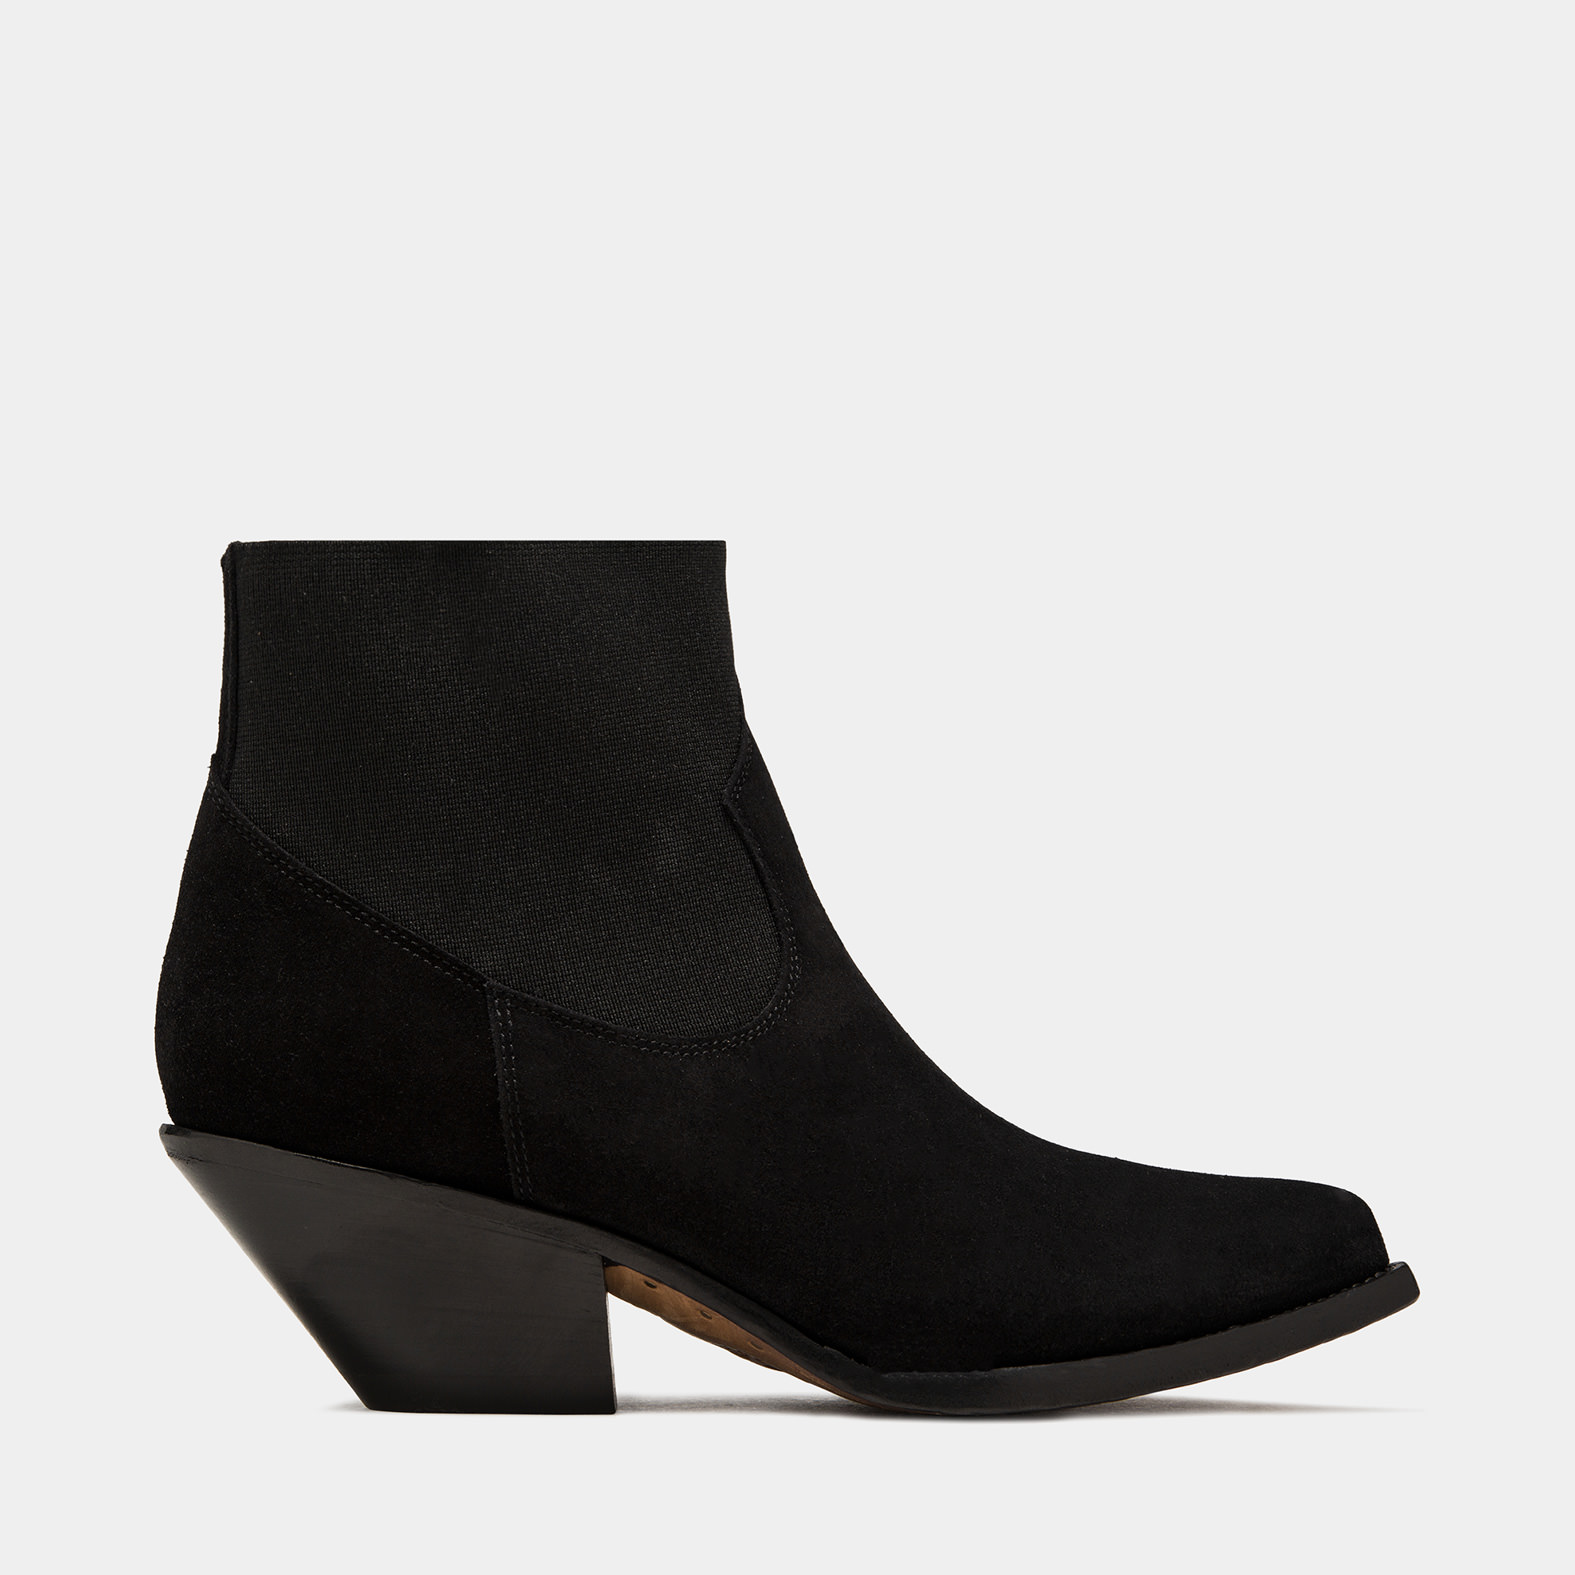 BUTTERO: BLACK ELISE ANKLE BOOTS IN SUEDE